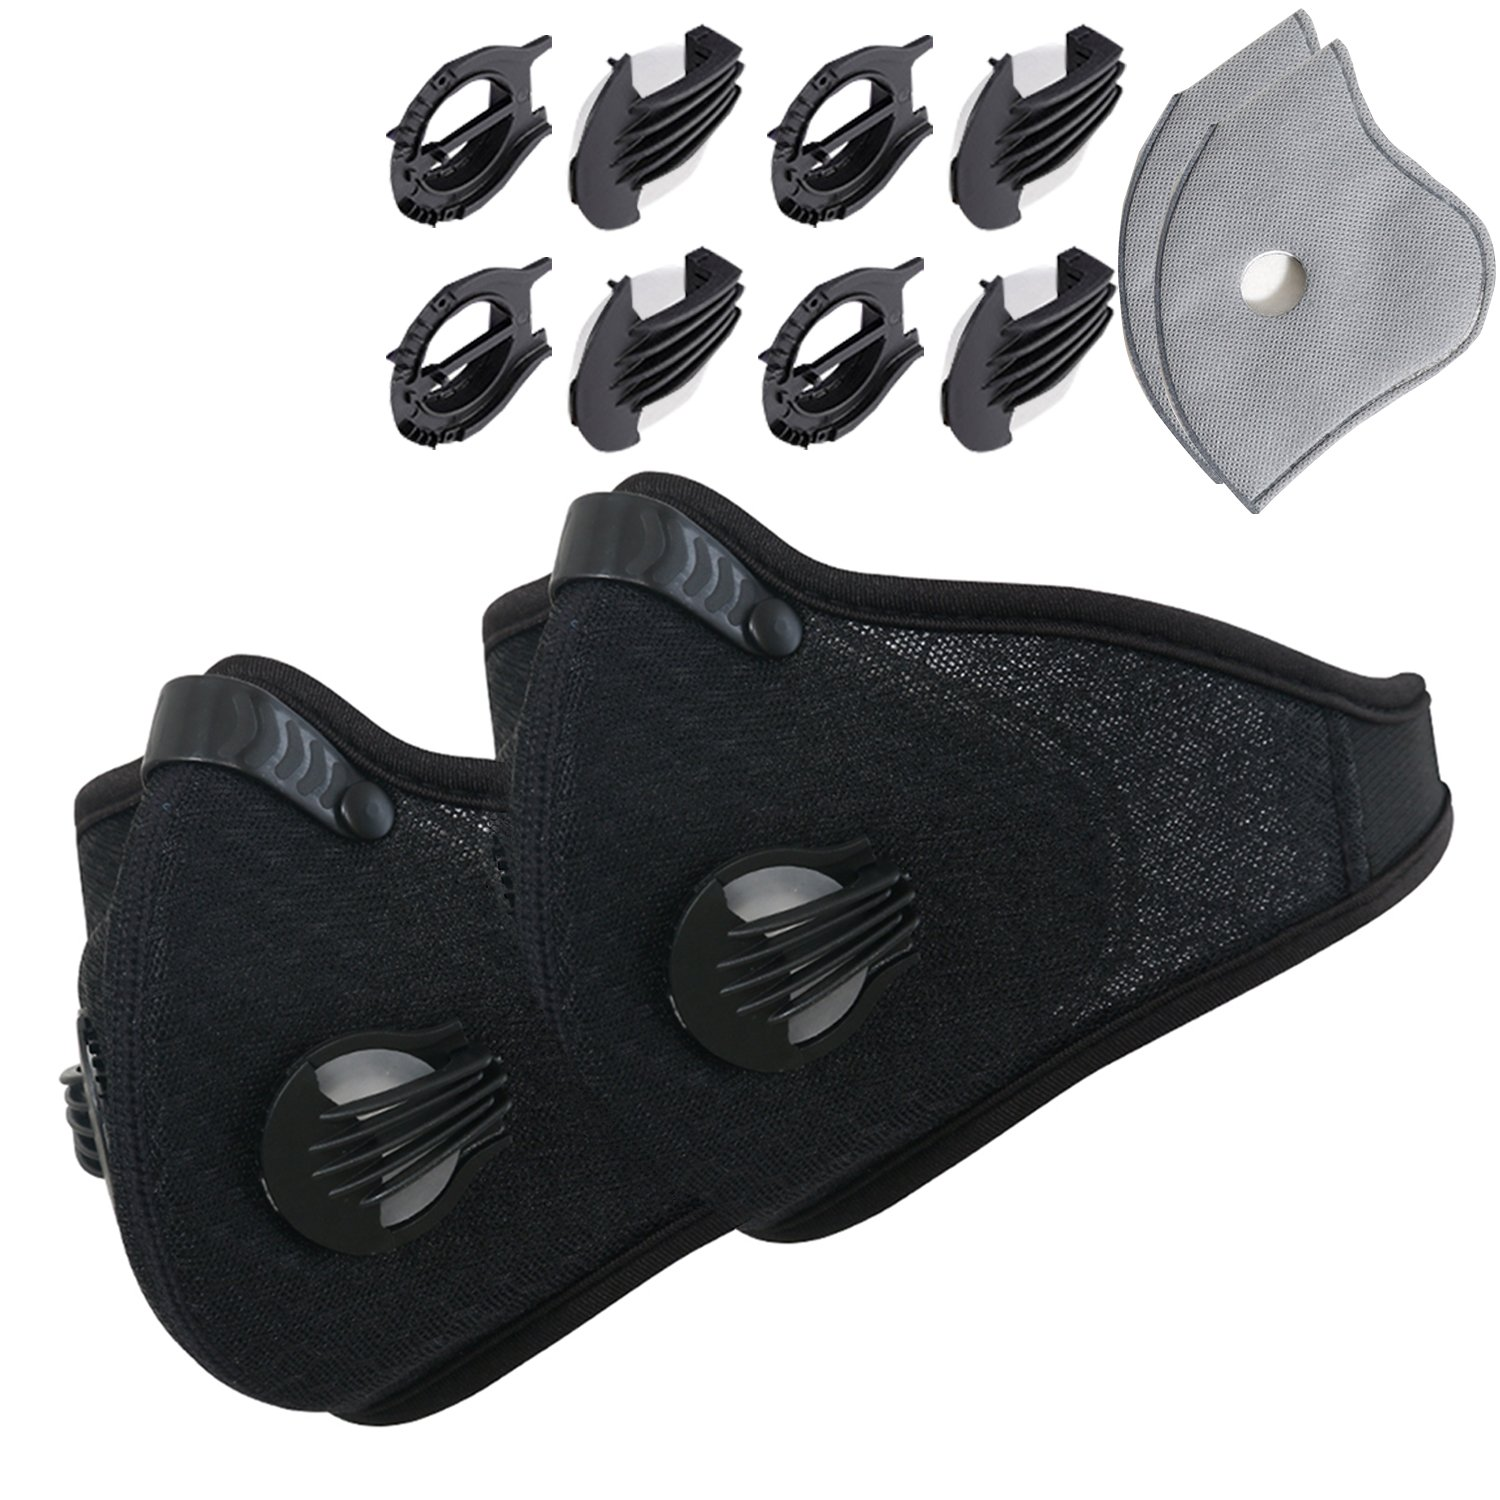 Novemkada Dustproof Masks - Activated Carbon Dust Mask with Extra Filter Cotton Sheet and Valves for Exhaust Gas, Pollen Allergy, PM2.5, Running, Cycling, Outdoor Activities (Black+Black, Dust Masks)